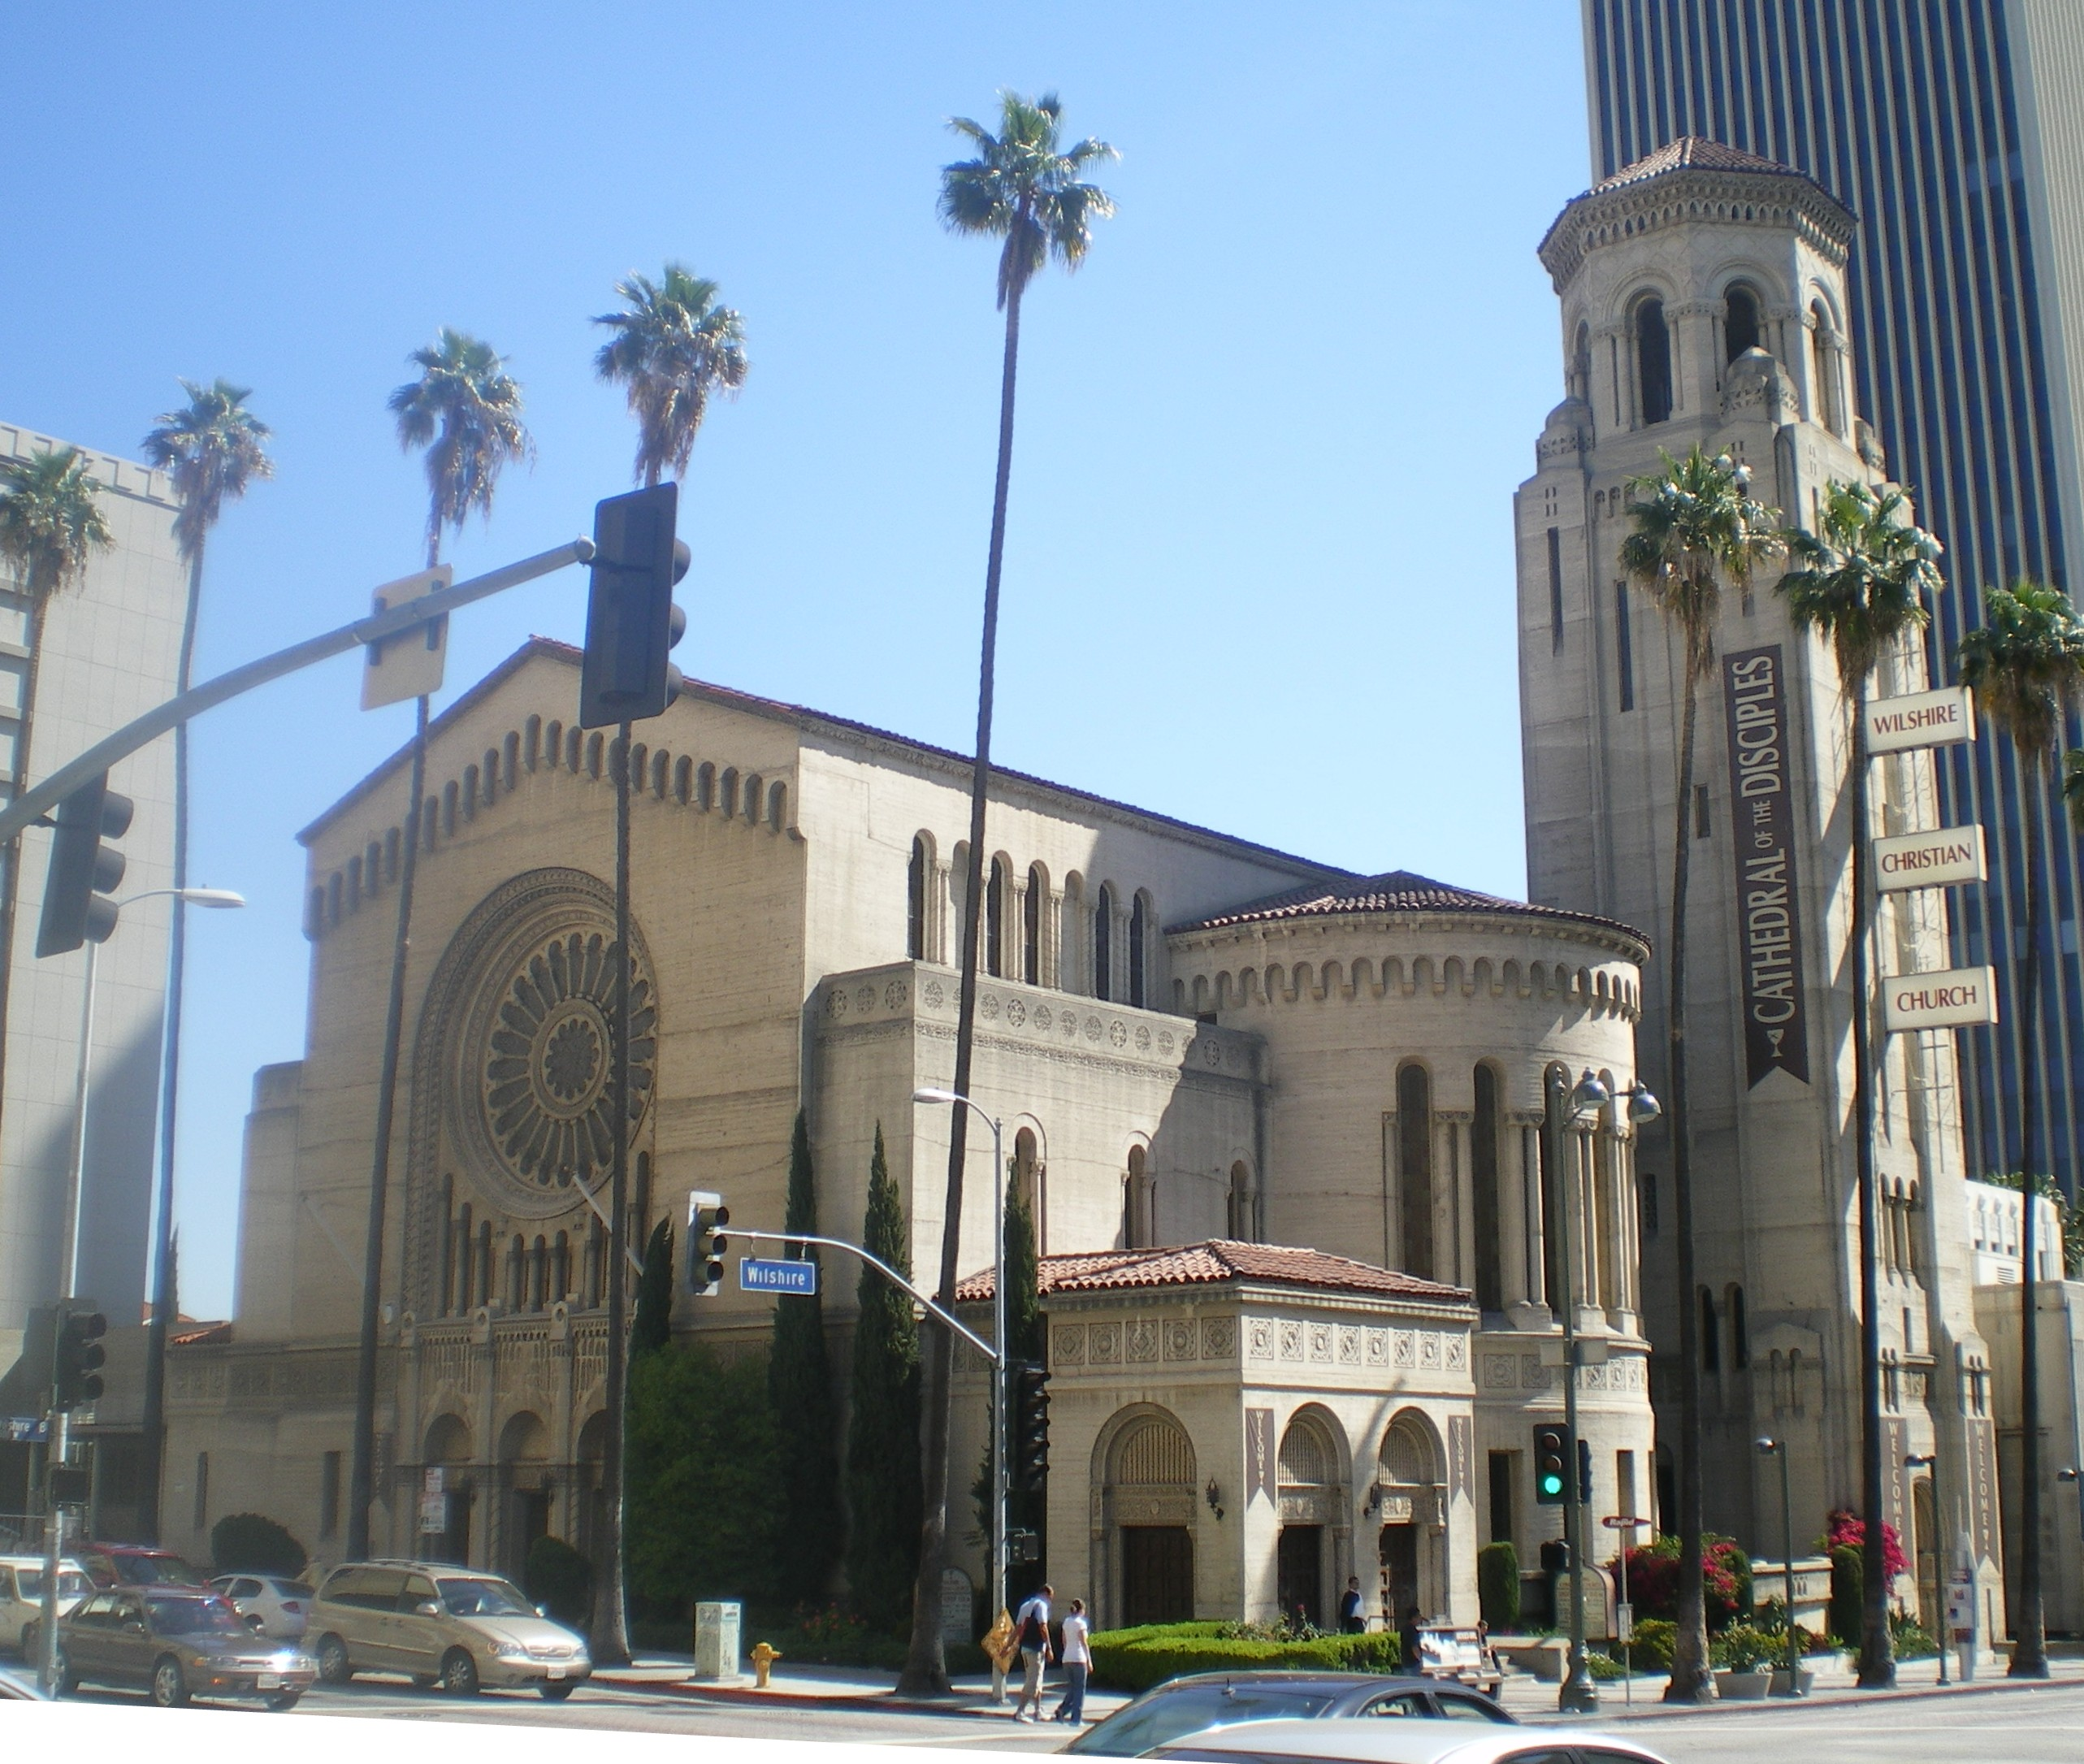 Los Angeles Small Houses: Churches In Los Angeles, California